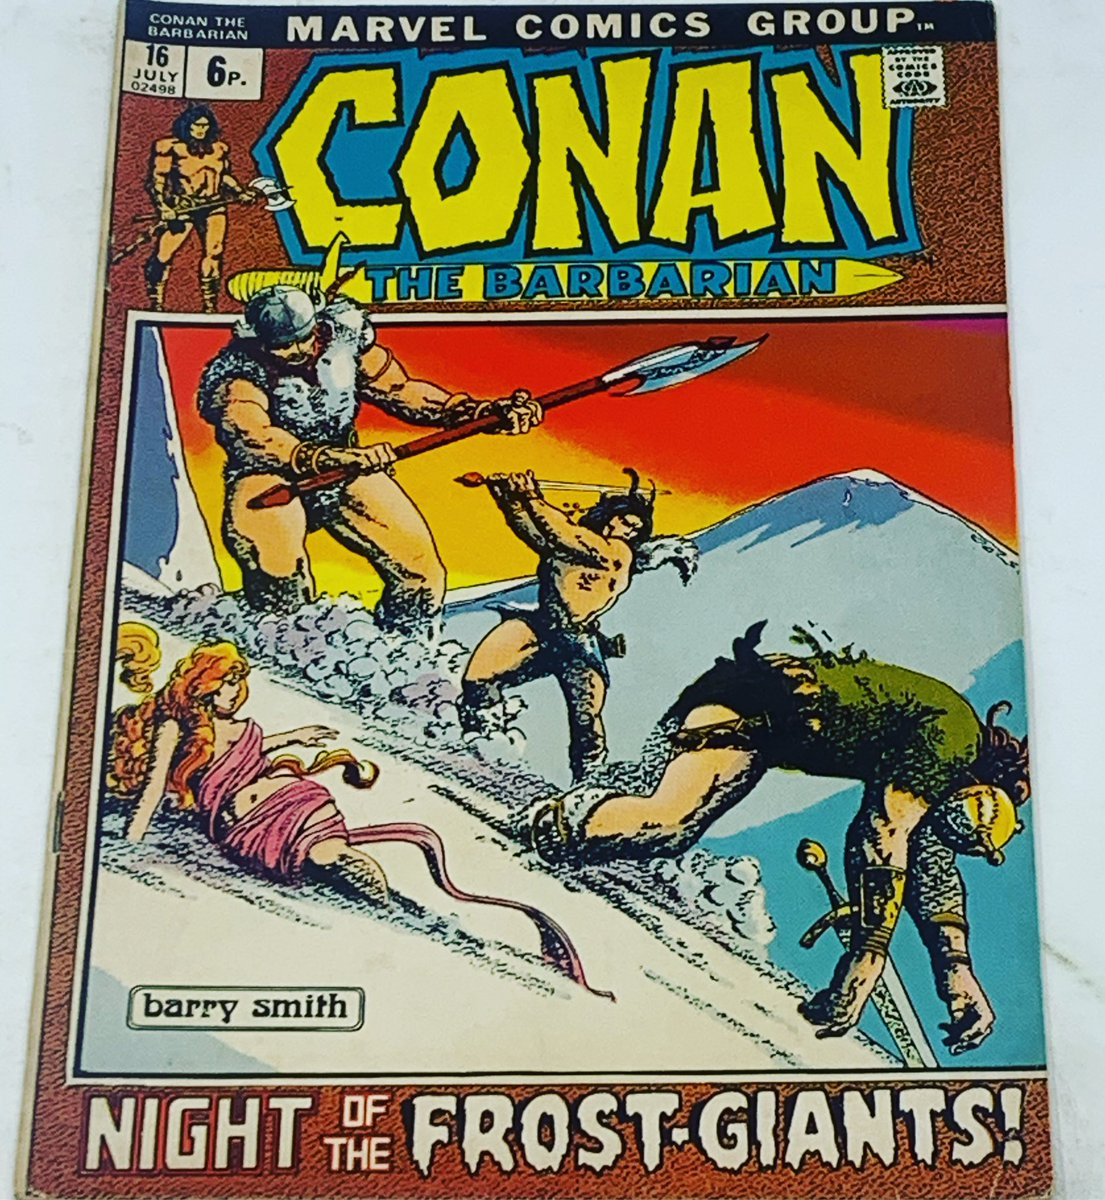 Barry Windsor Smith claims Cover Of The Day today with Conan The Barbarian #16. I do think the woman in the foreground should wrap up a bit though, that snow must be cold 🥶🥶#coveroftheday #conan #unrealitystore #barrywindsorsmith #frostgiants https://t.co/yAy2sfe5kB